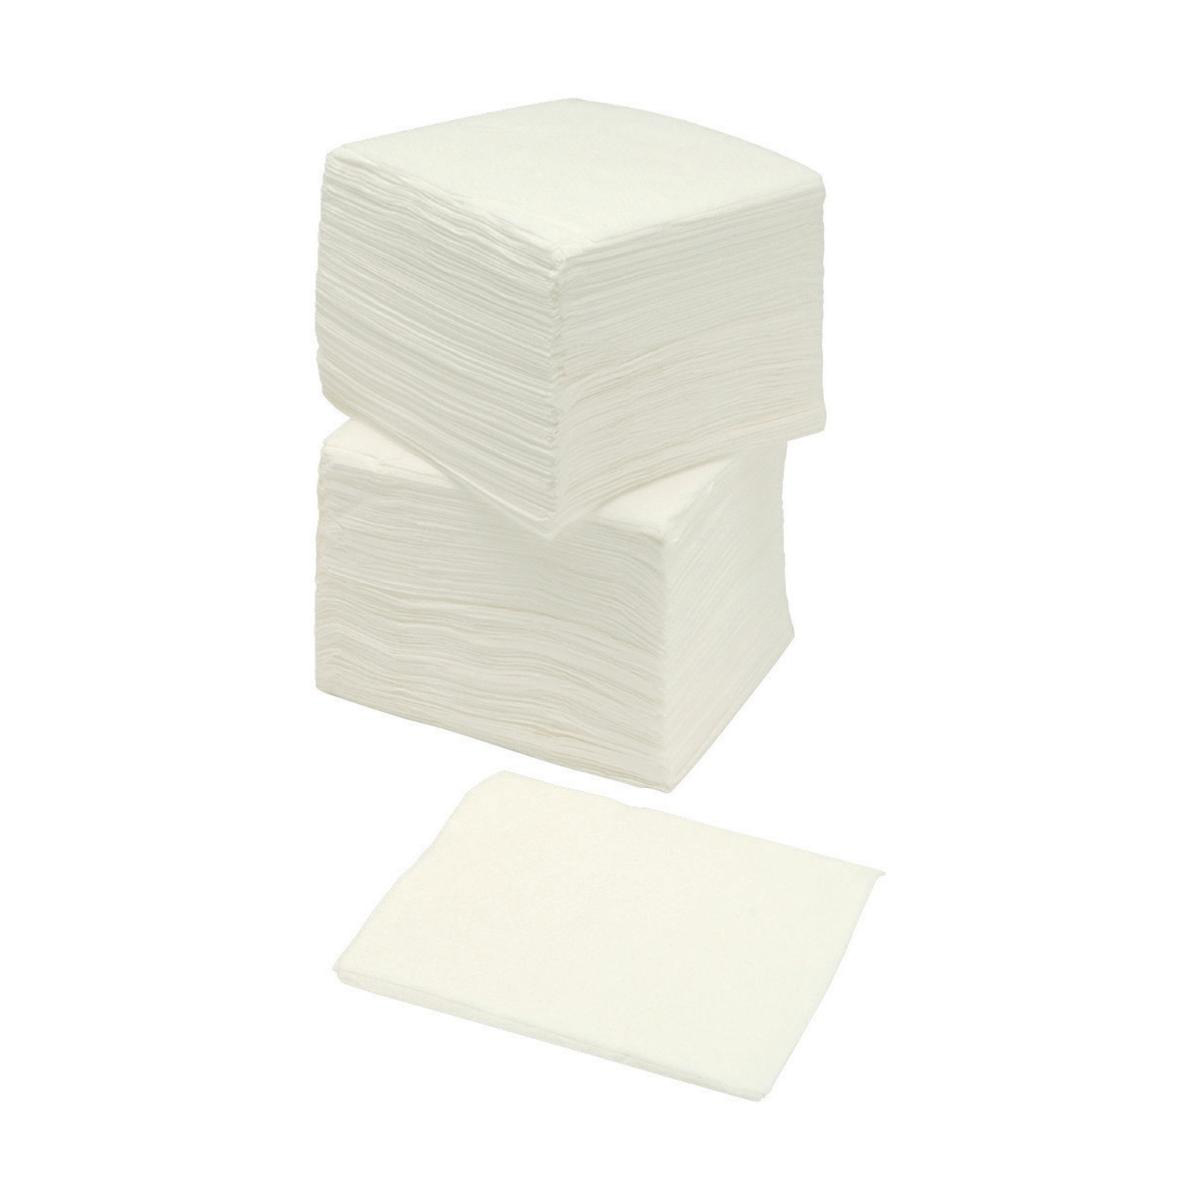 Serviettes / Napkins 5 Star Facilities Napkins Single Ply 300x300mm White Pack 500